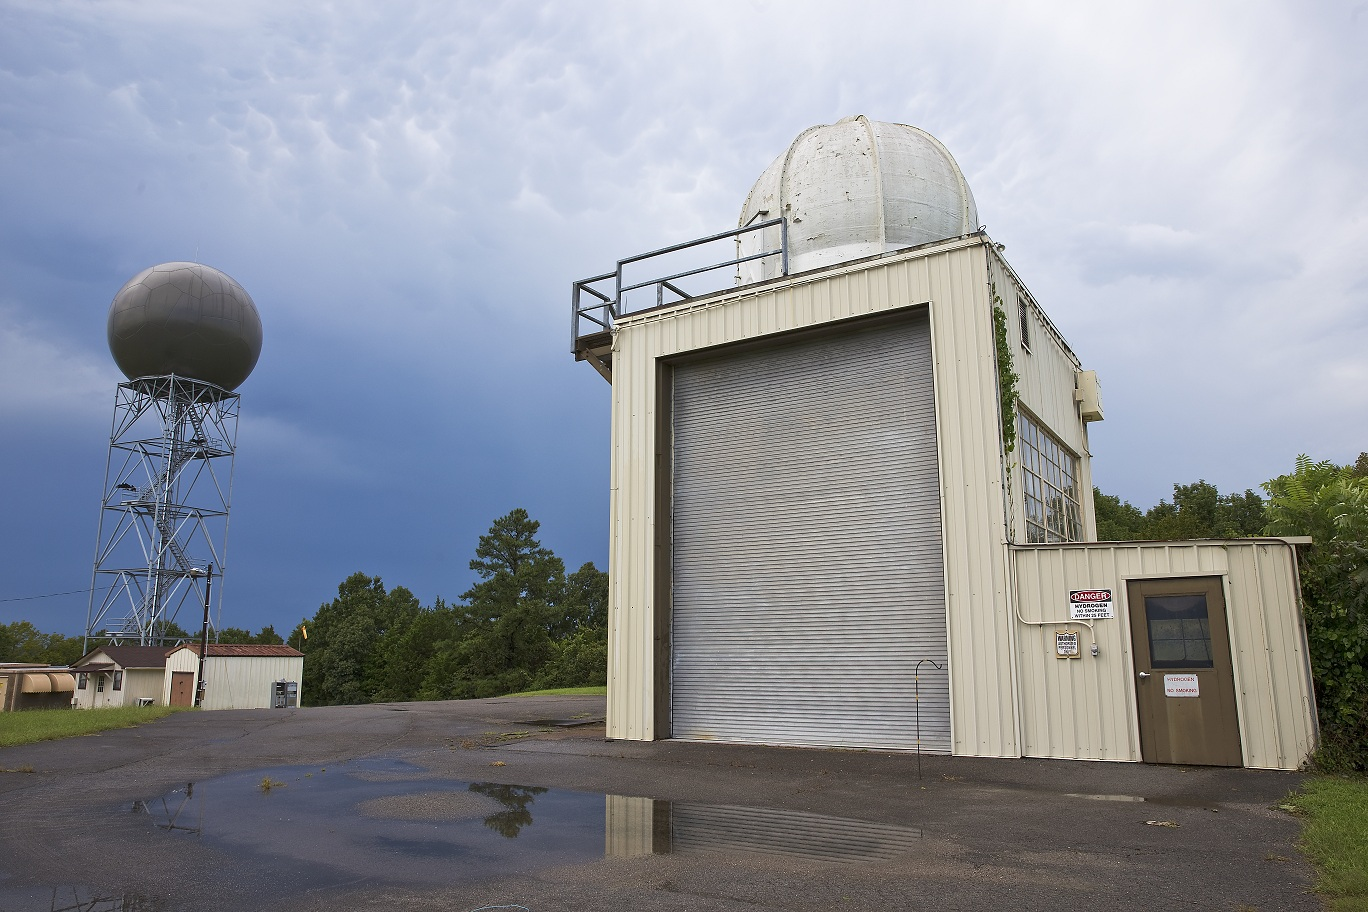 NWS Nashville upper air inflation shelter